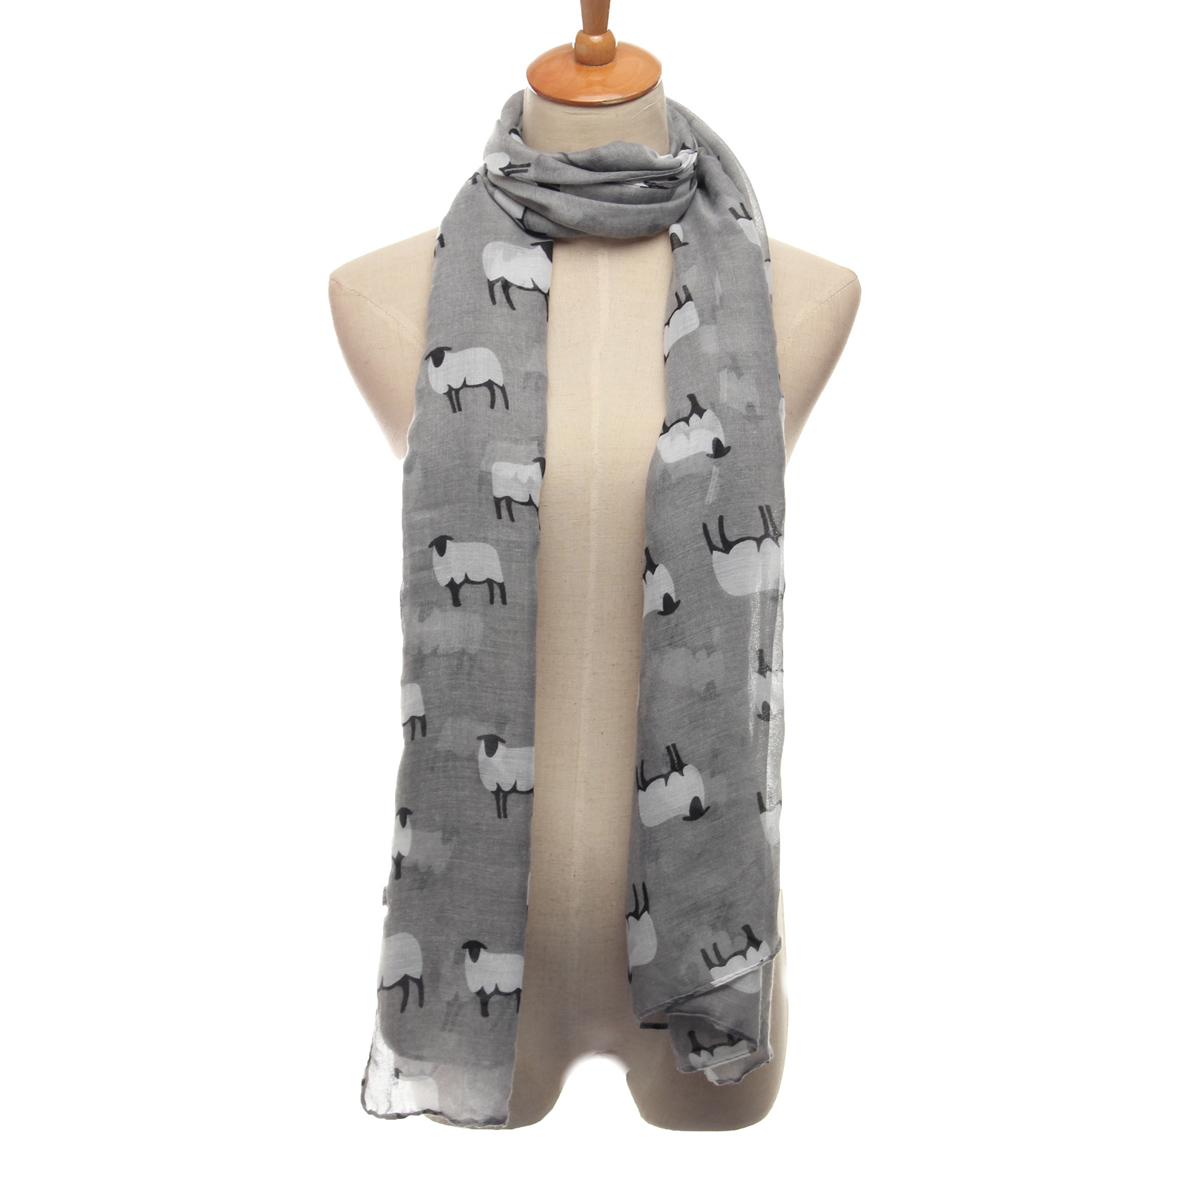 Fashion Women Sheep Animal Print Scarf Winter Warm Shawl Wrap Stole Pashmina